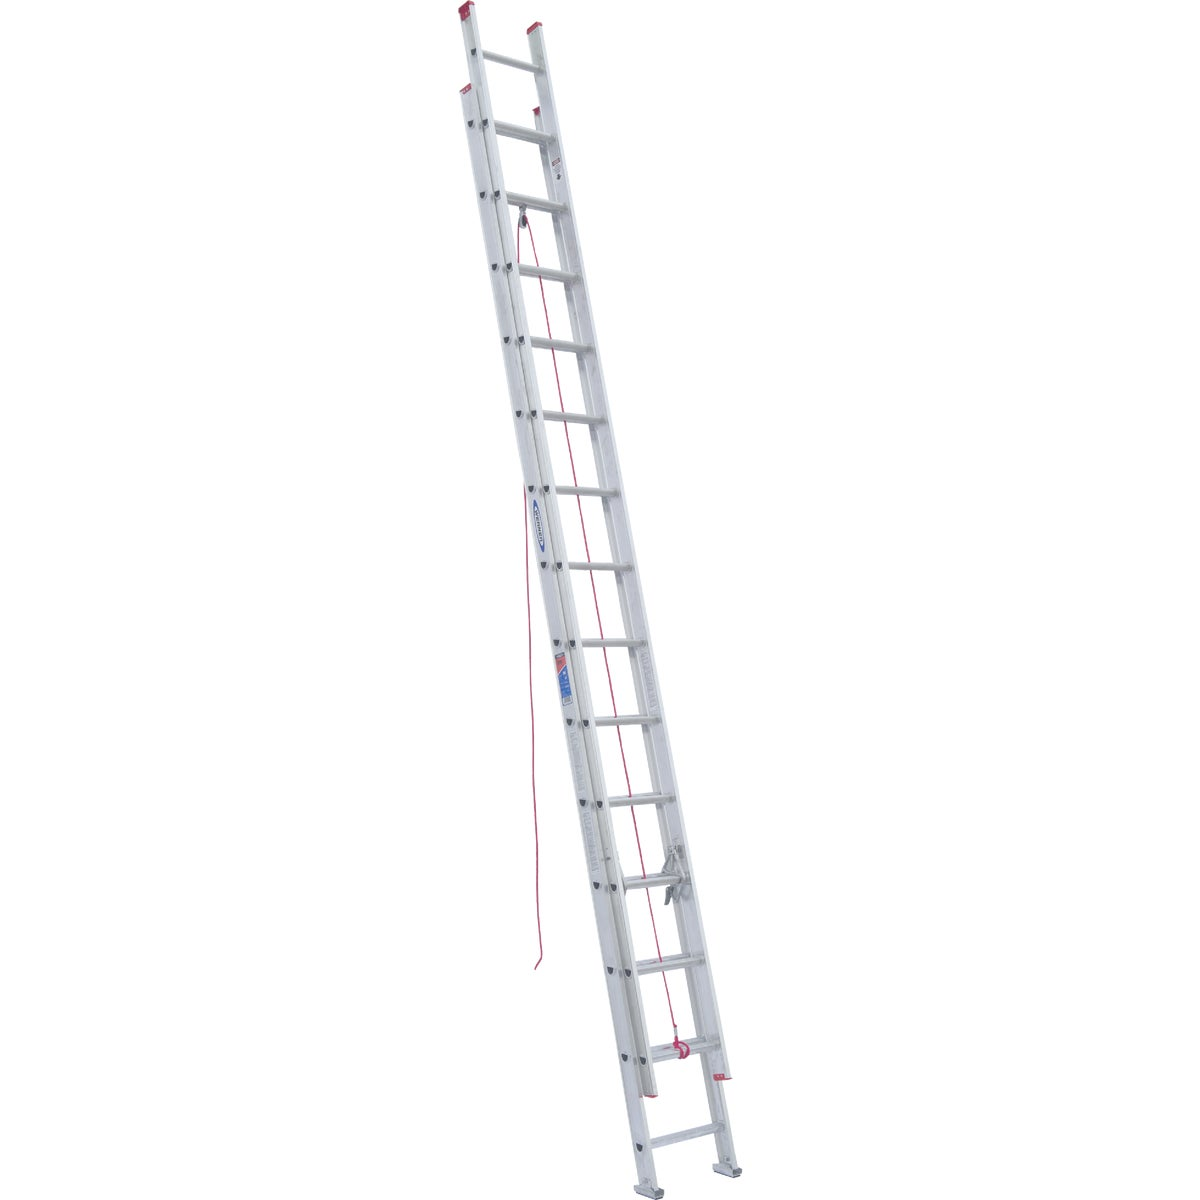 T-3 28' ALUM EXT LADDER